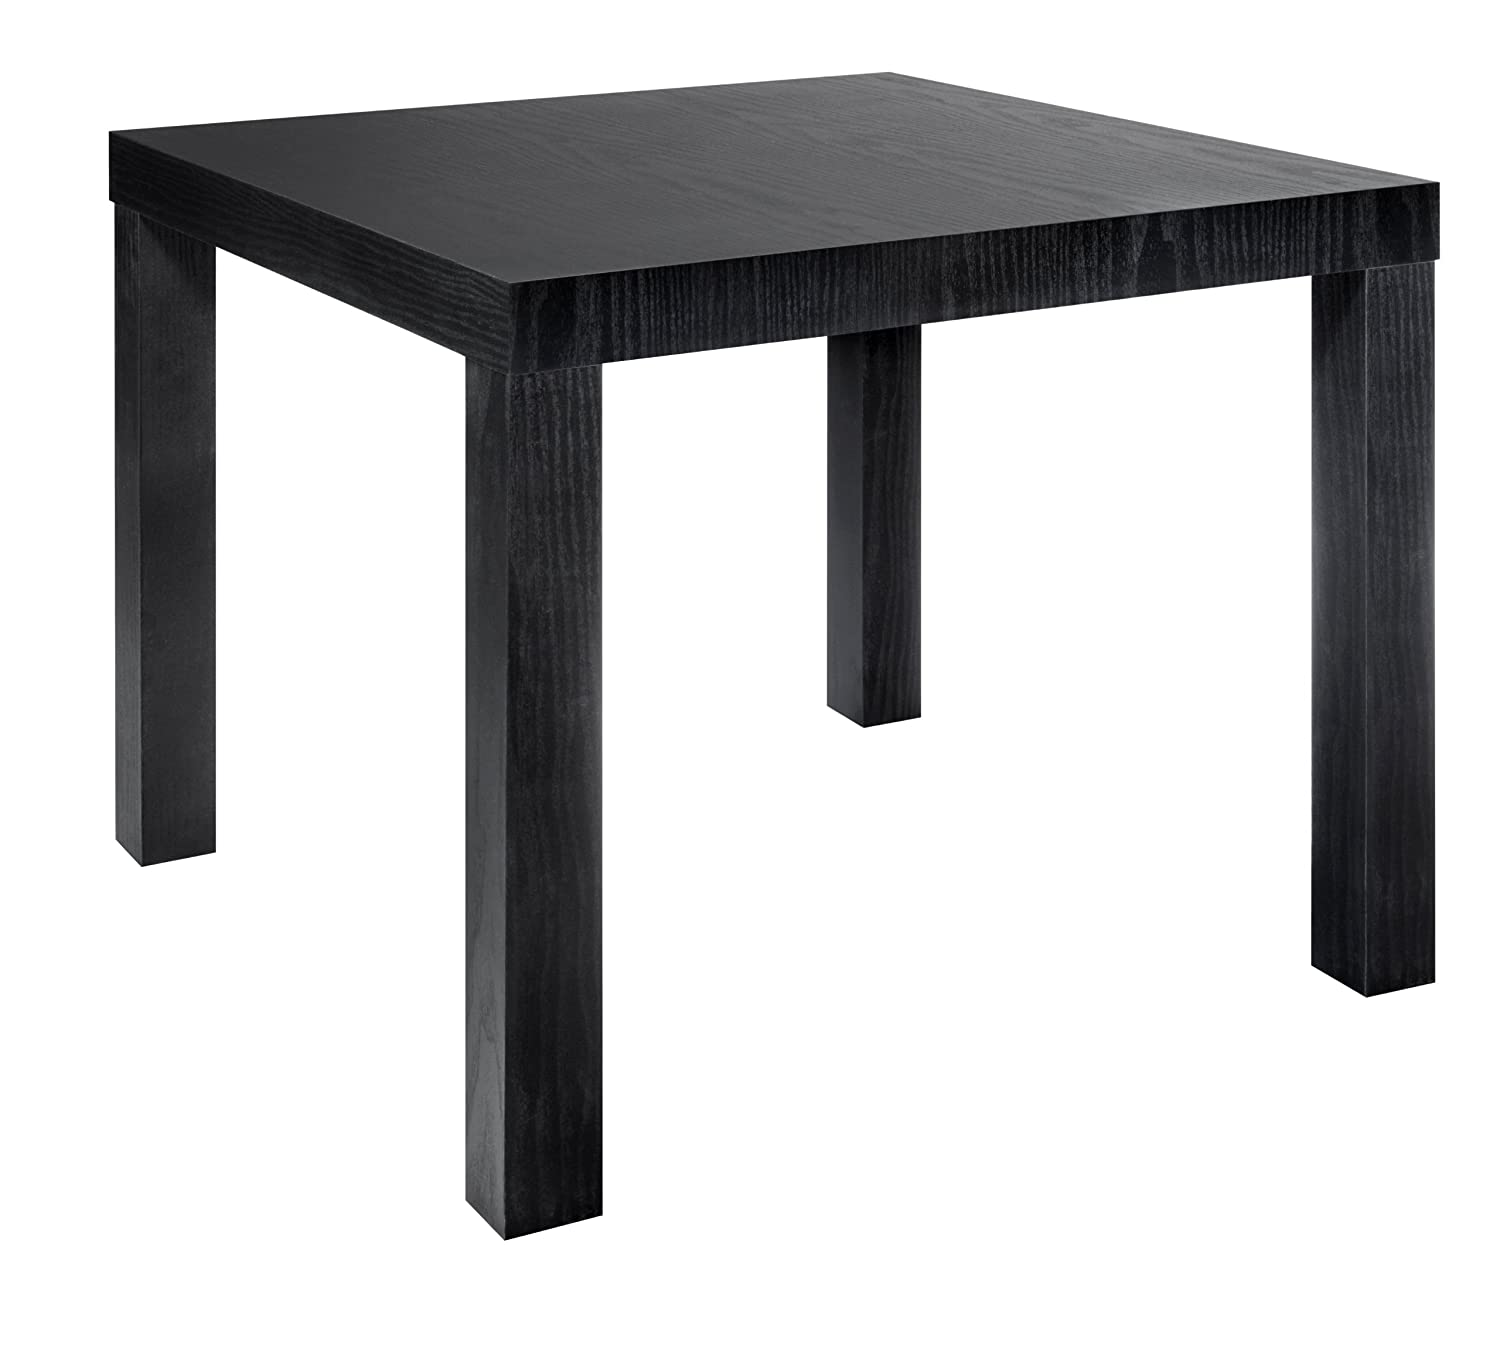 Modern style black wood grain end table living room Espresso coffee table